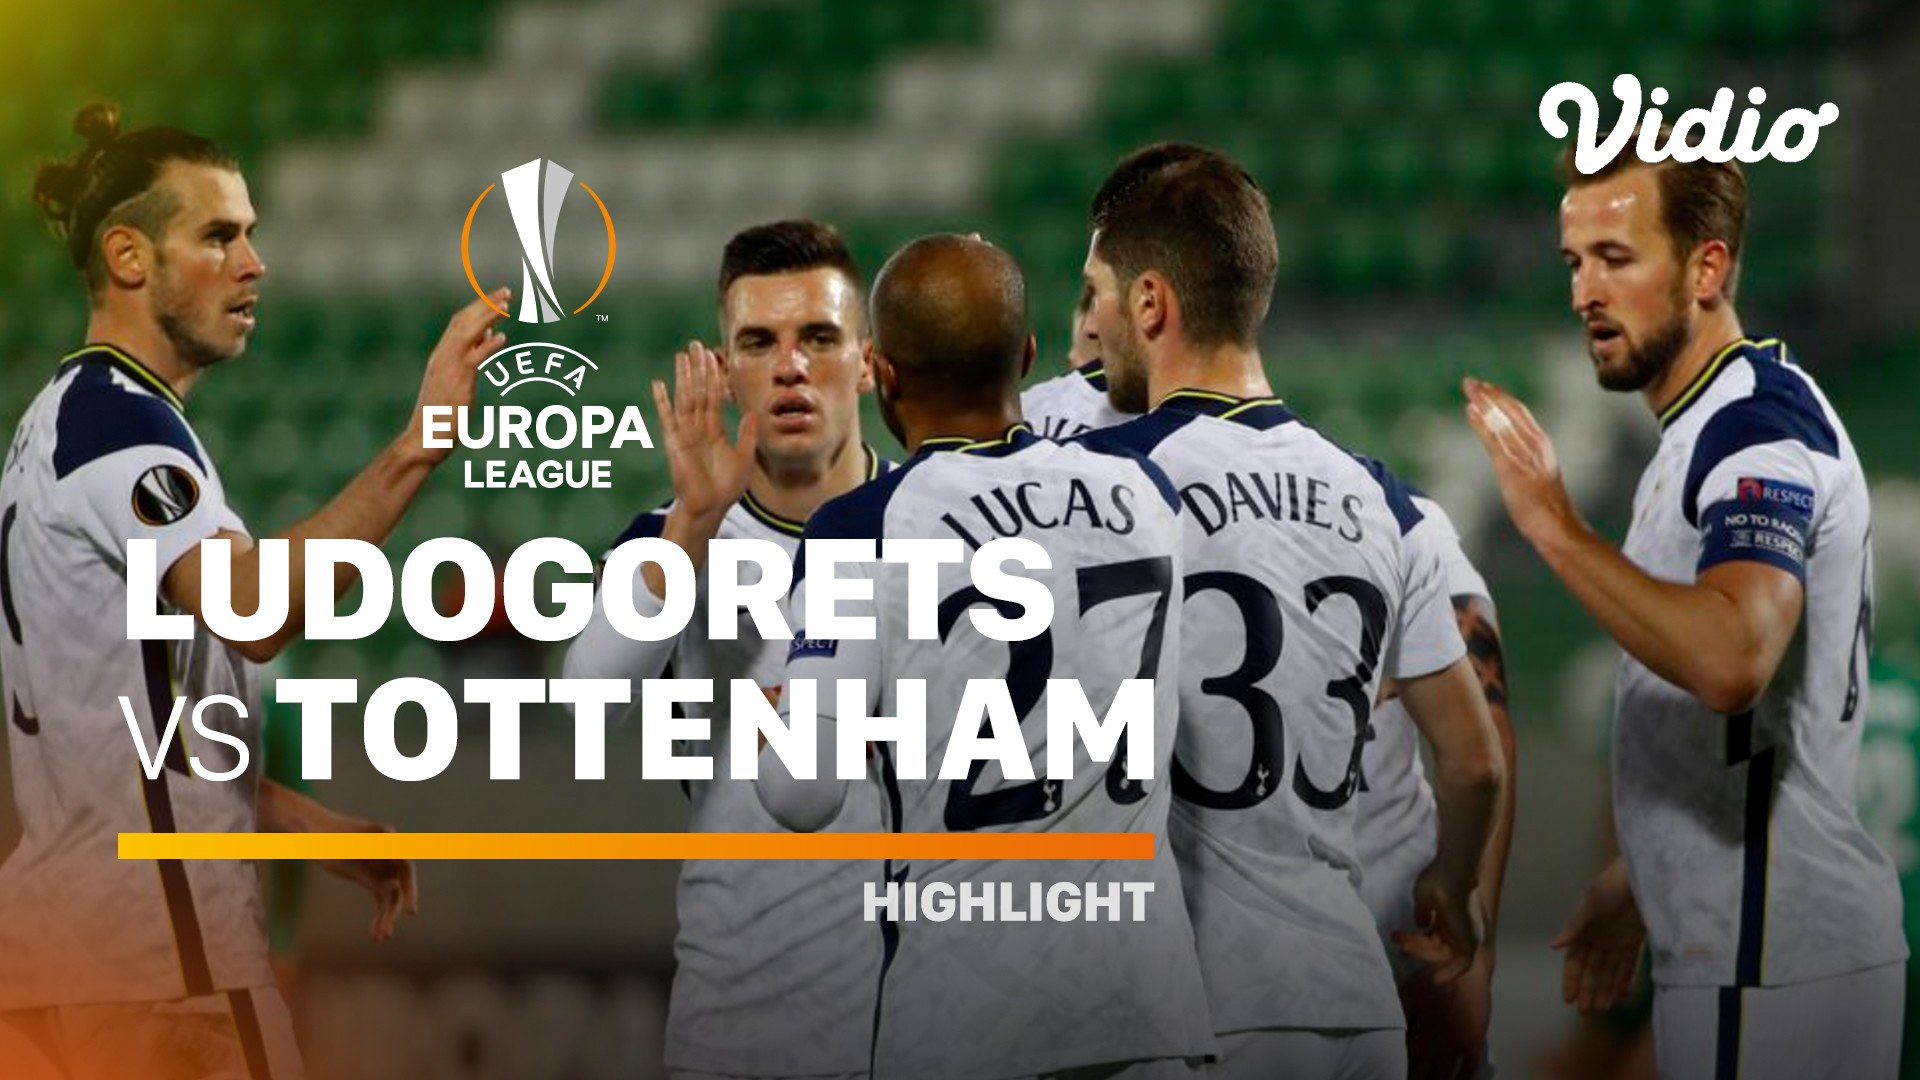 Streaming Highlight Ludogorets Vs Tottenham Hotspur I Uefa Europa League 2020 2021 Vidio Com